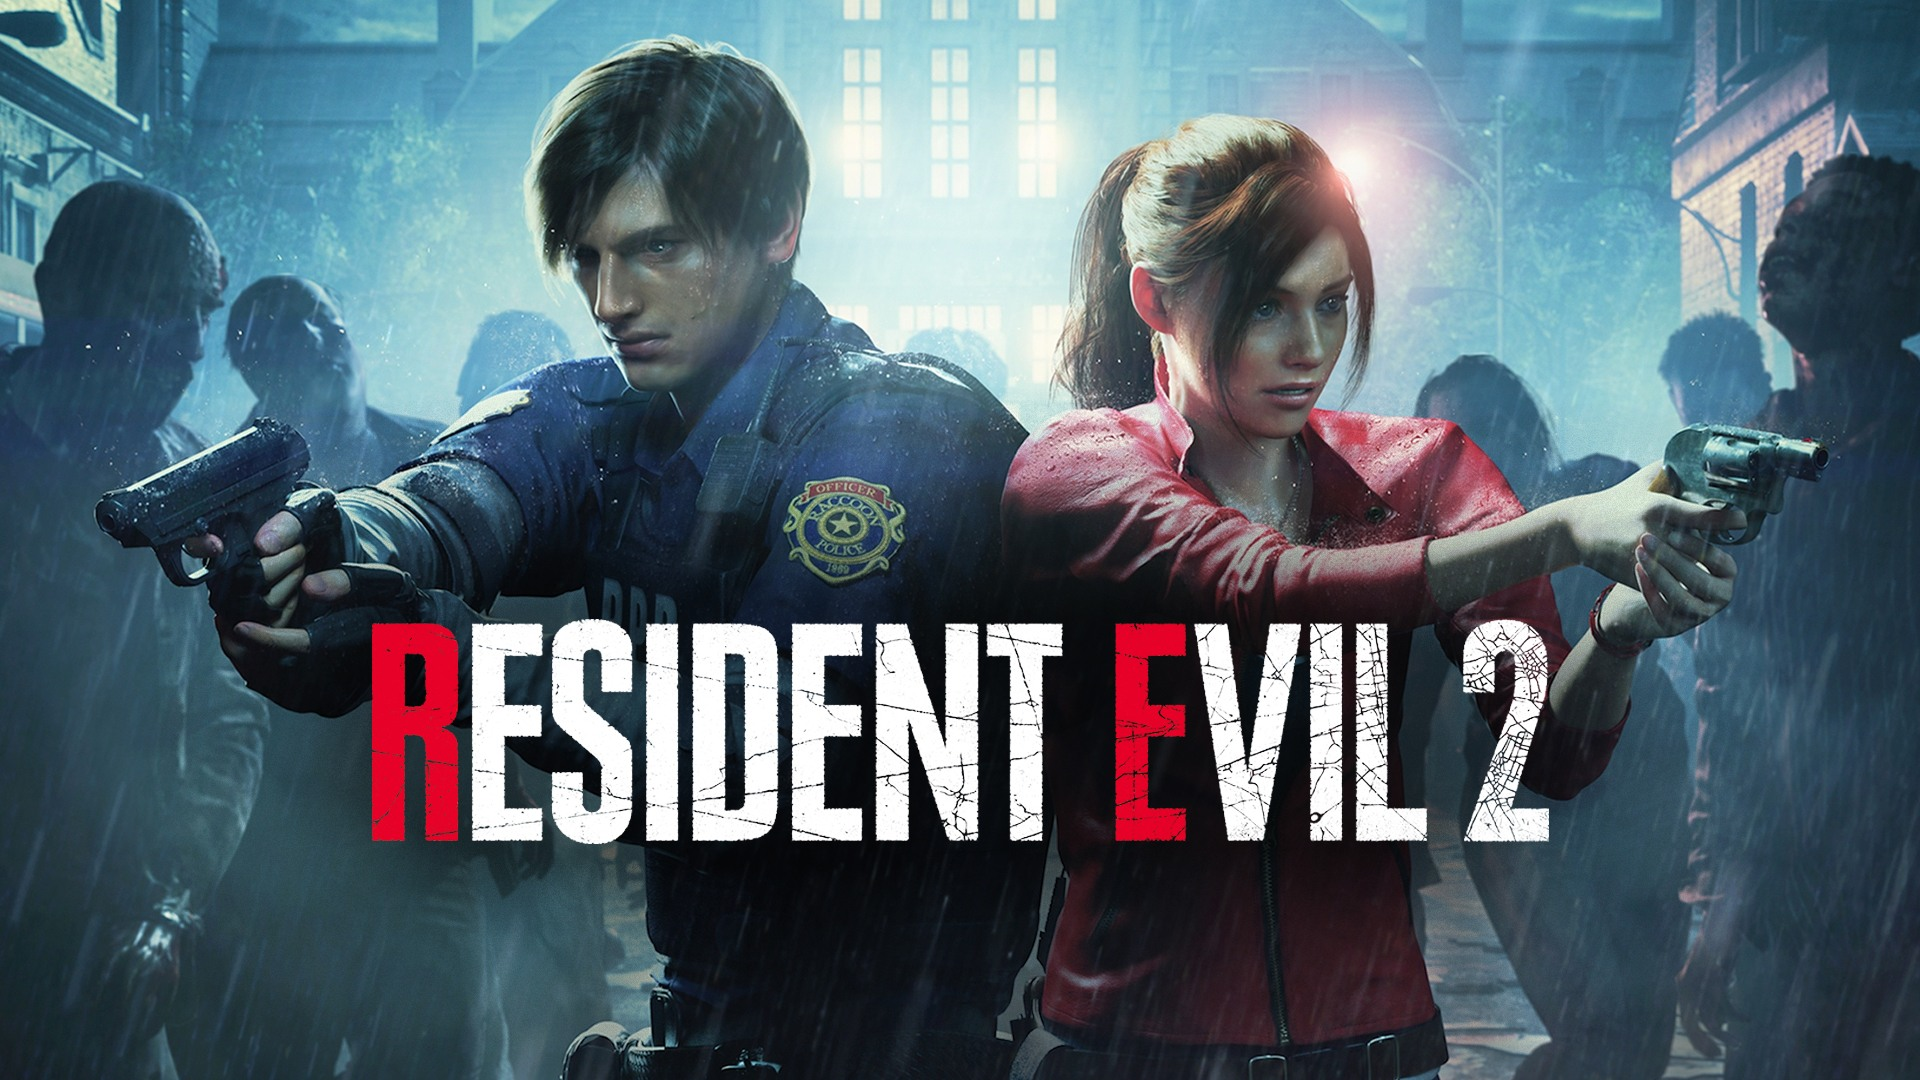 Resident Evil 2: Video Game Walkthrough Guide (I part)